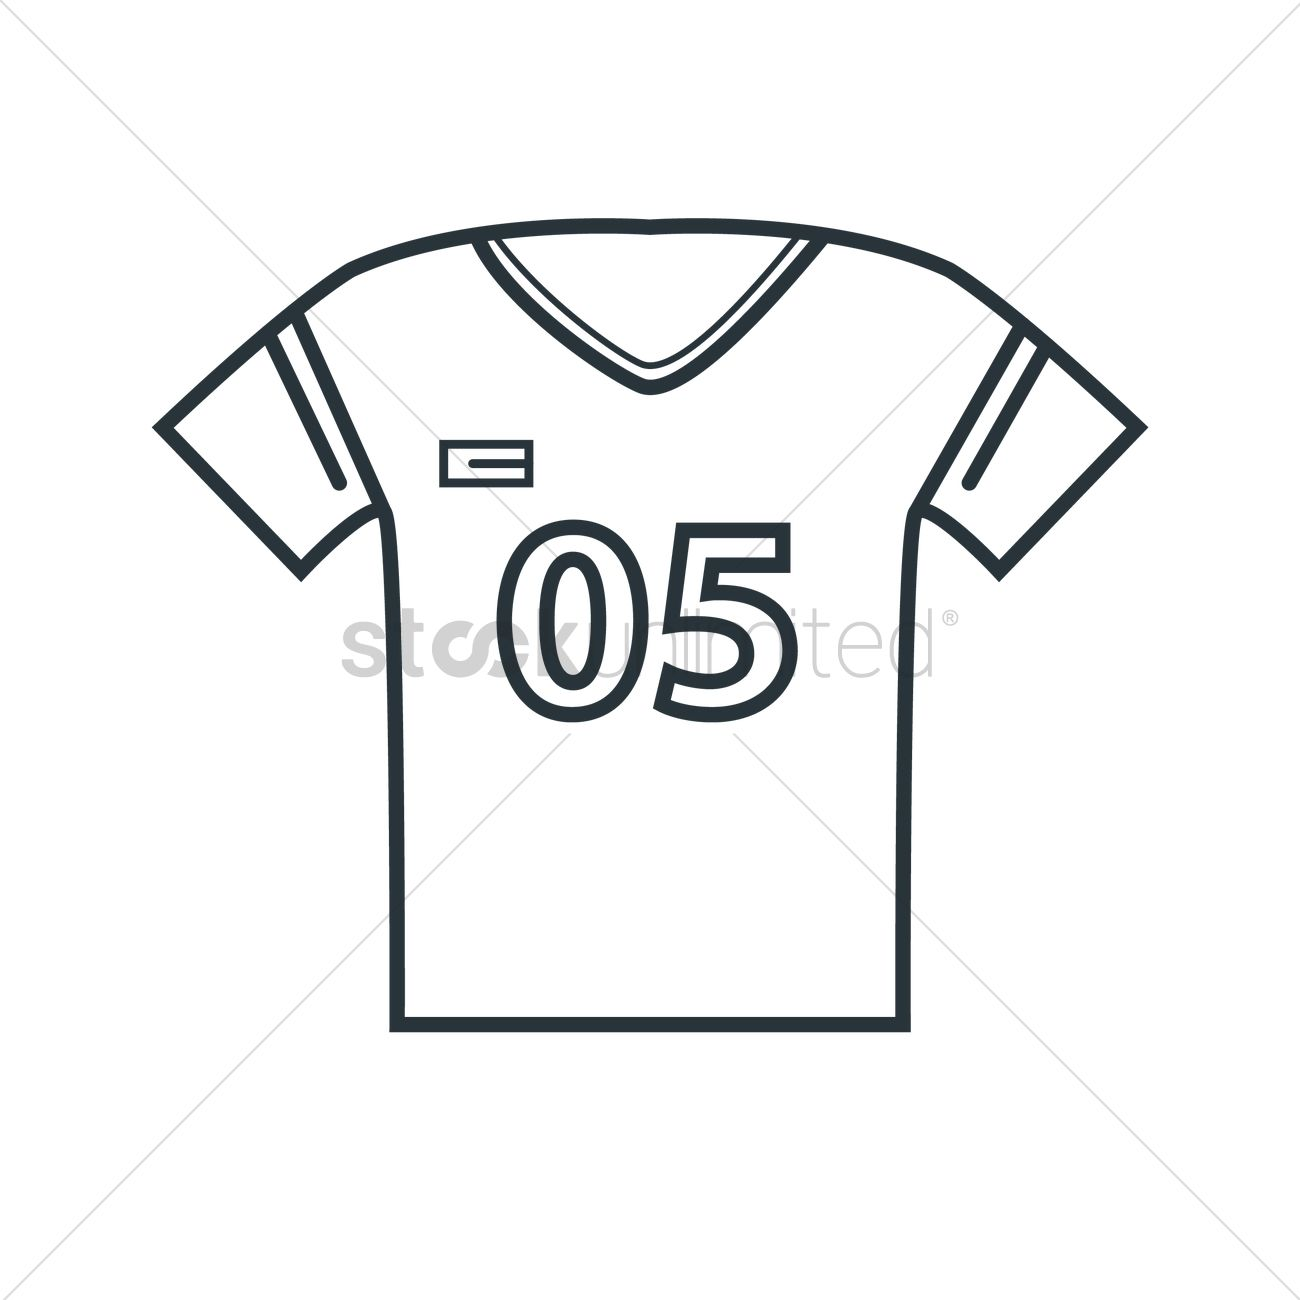 Football Jersey Vector Image